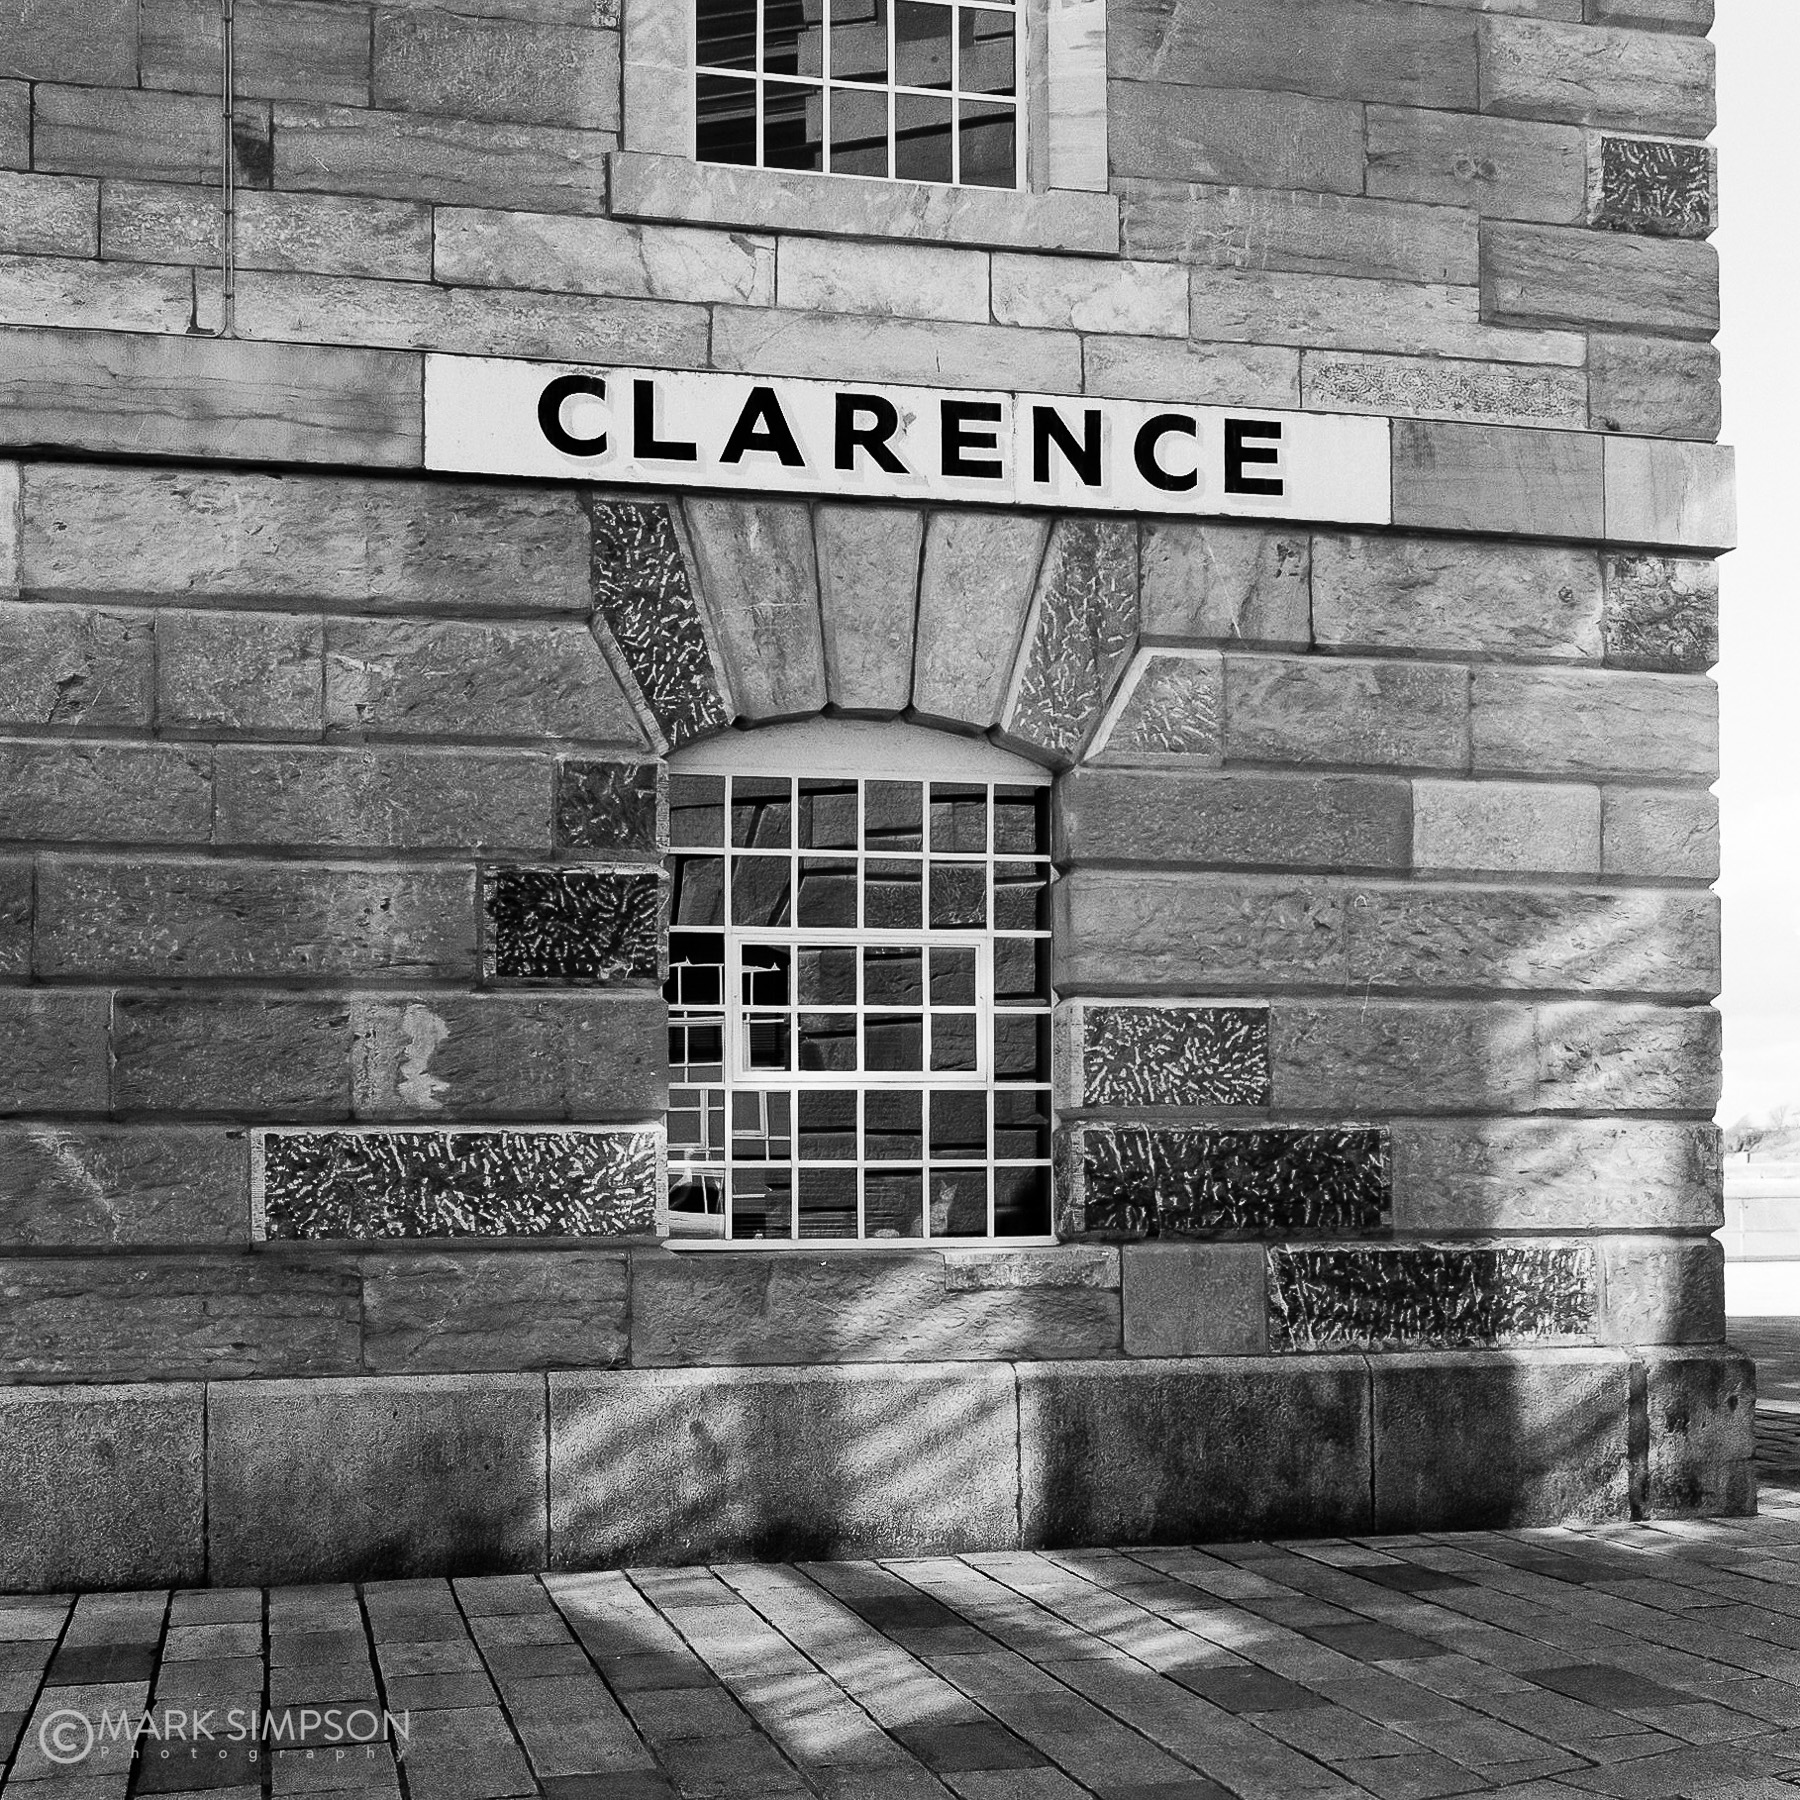 Clarence, built in 1831 as a liquid store at Royal William Yard, Plymouth, Devon. (Rolleiflex K4/50, Ilford HP5+ 400 film)